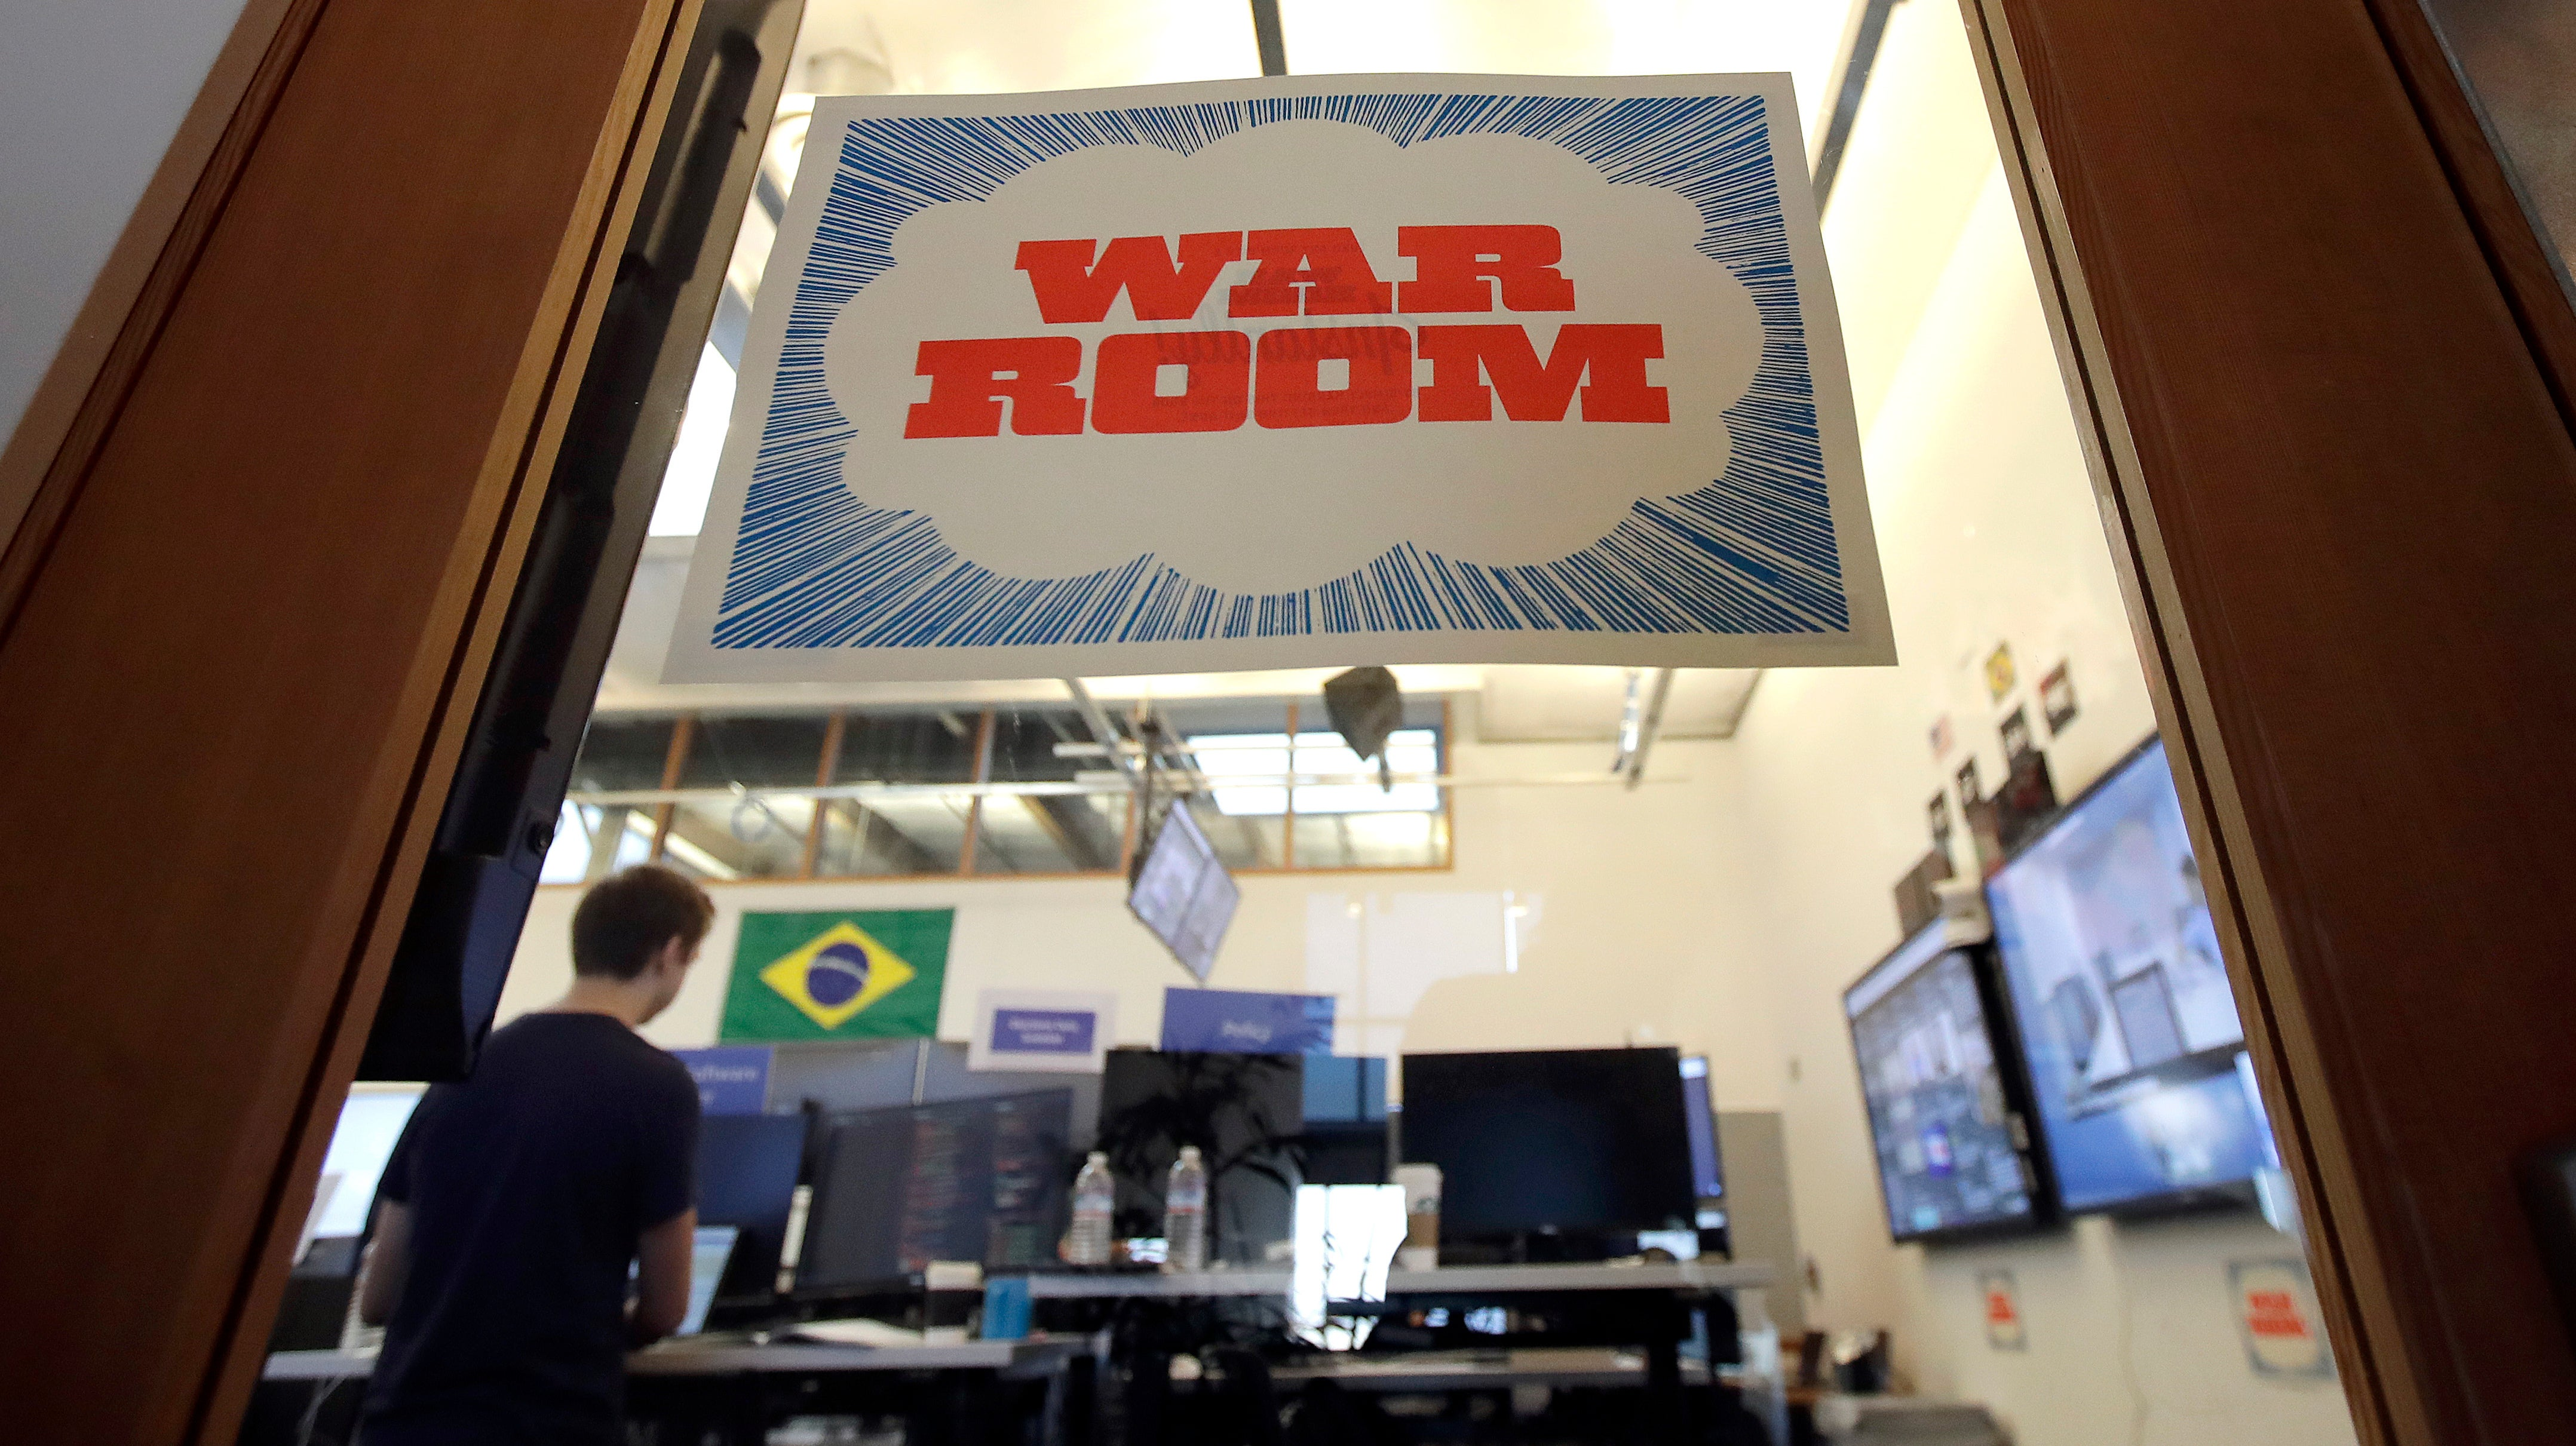 Facebook's Physical War Room Is Already Empty, But It Says 'War Room Tactics' Will Continue